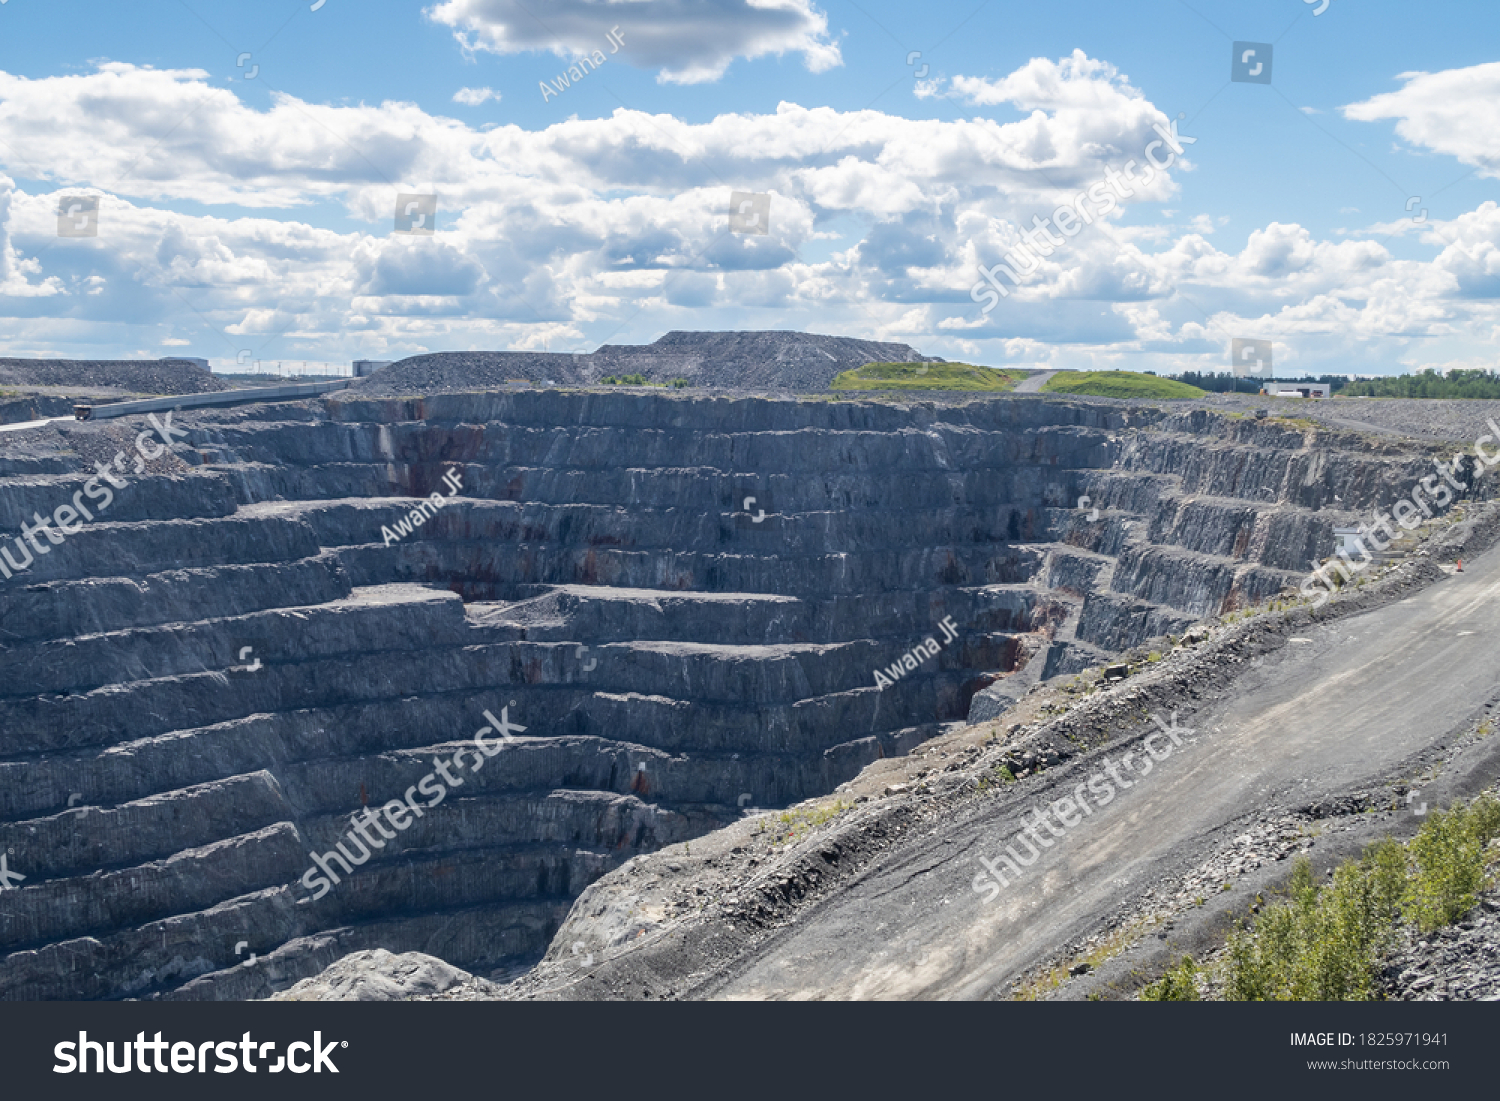 stock-photo-view-of-the-open-pit-canadia